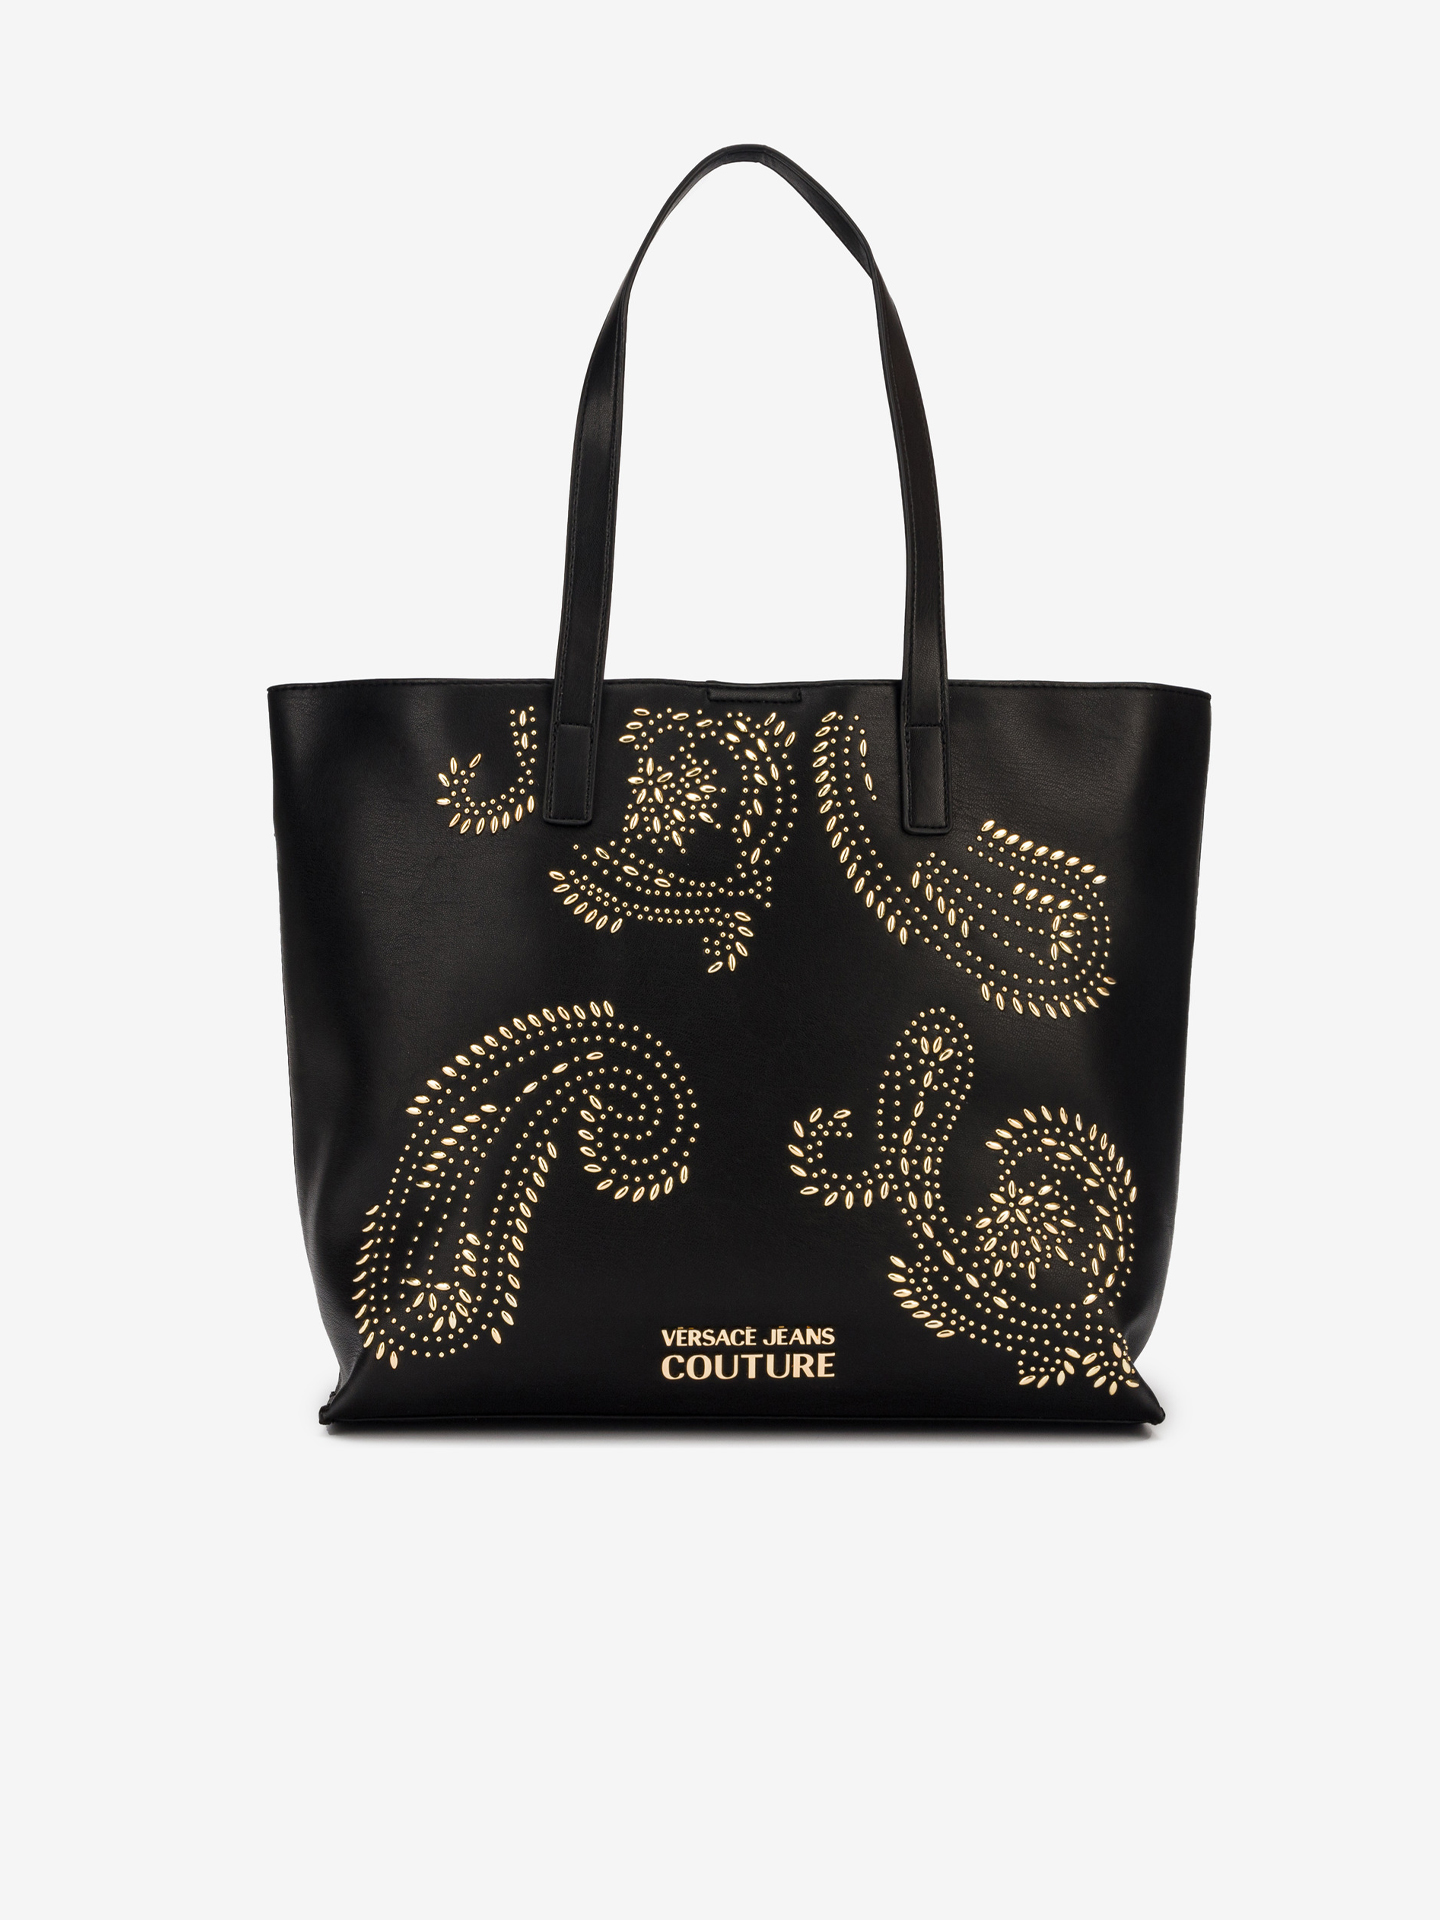 Versace Jeans Couture Torba crna